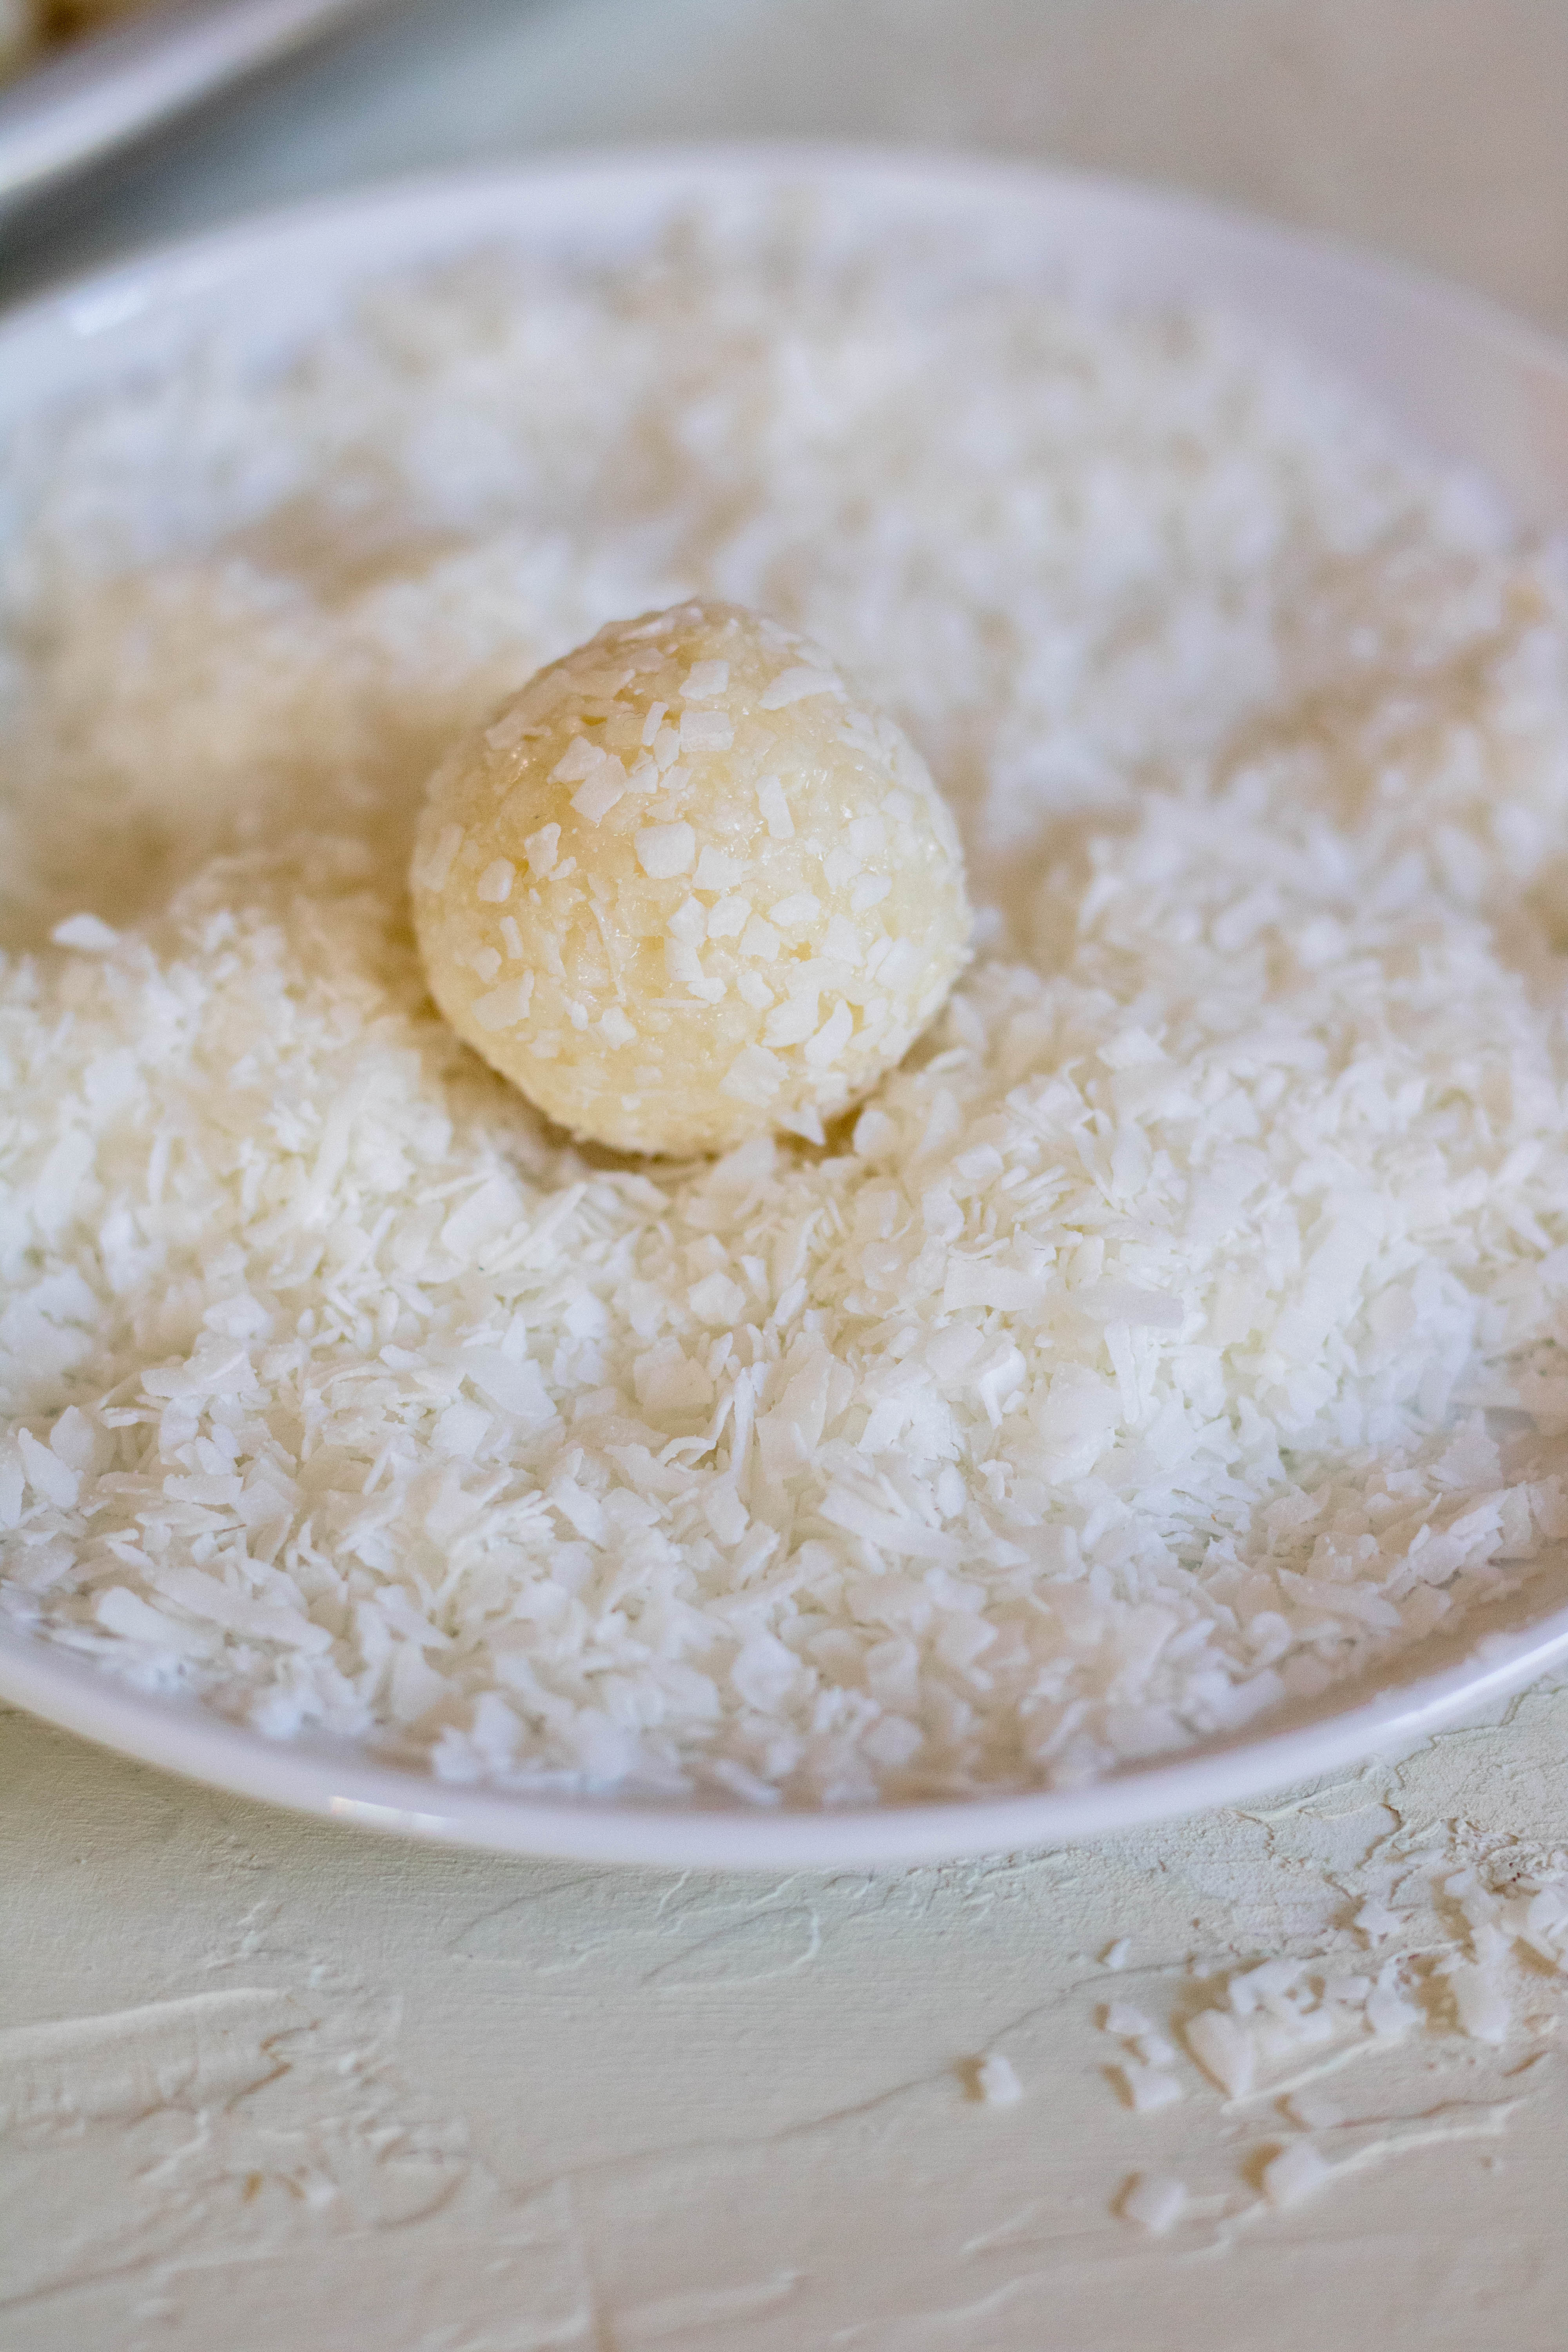 Coating the coconut balls with shredded coconut